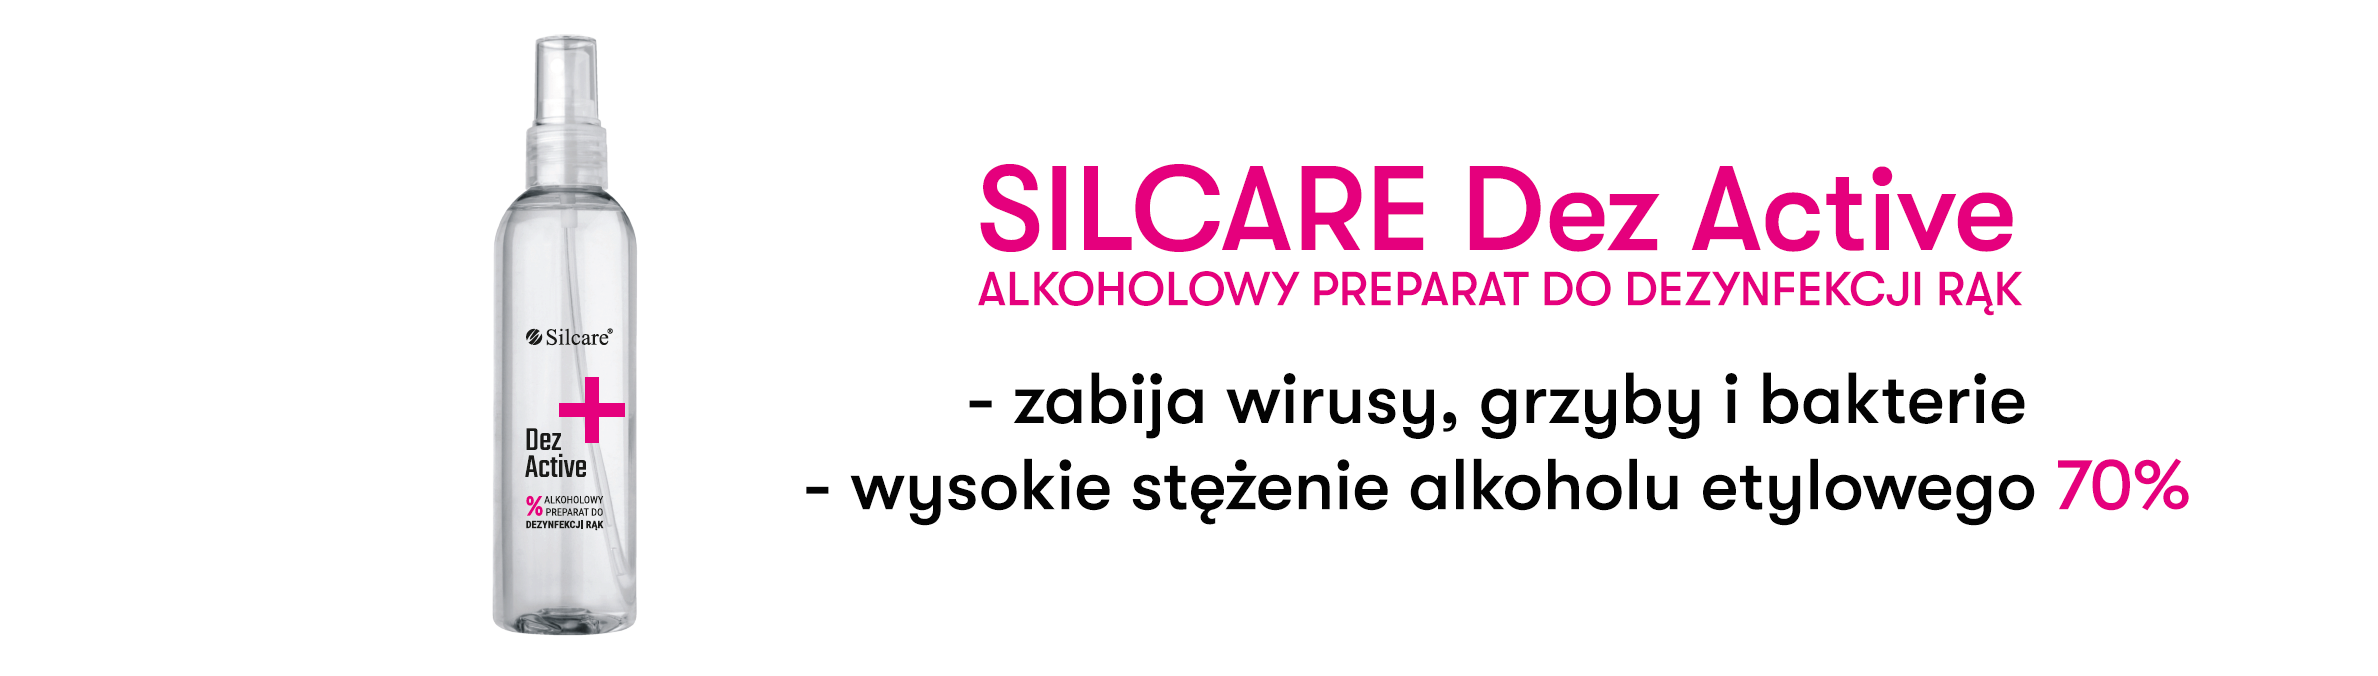 Silcare Dez Active